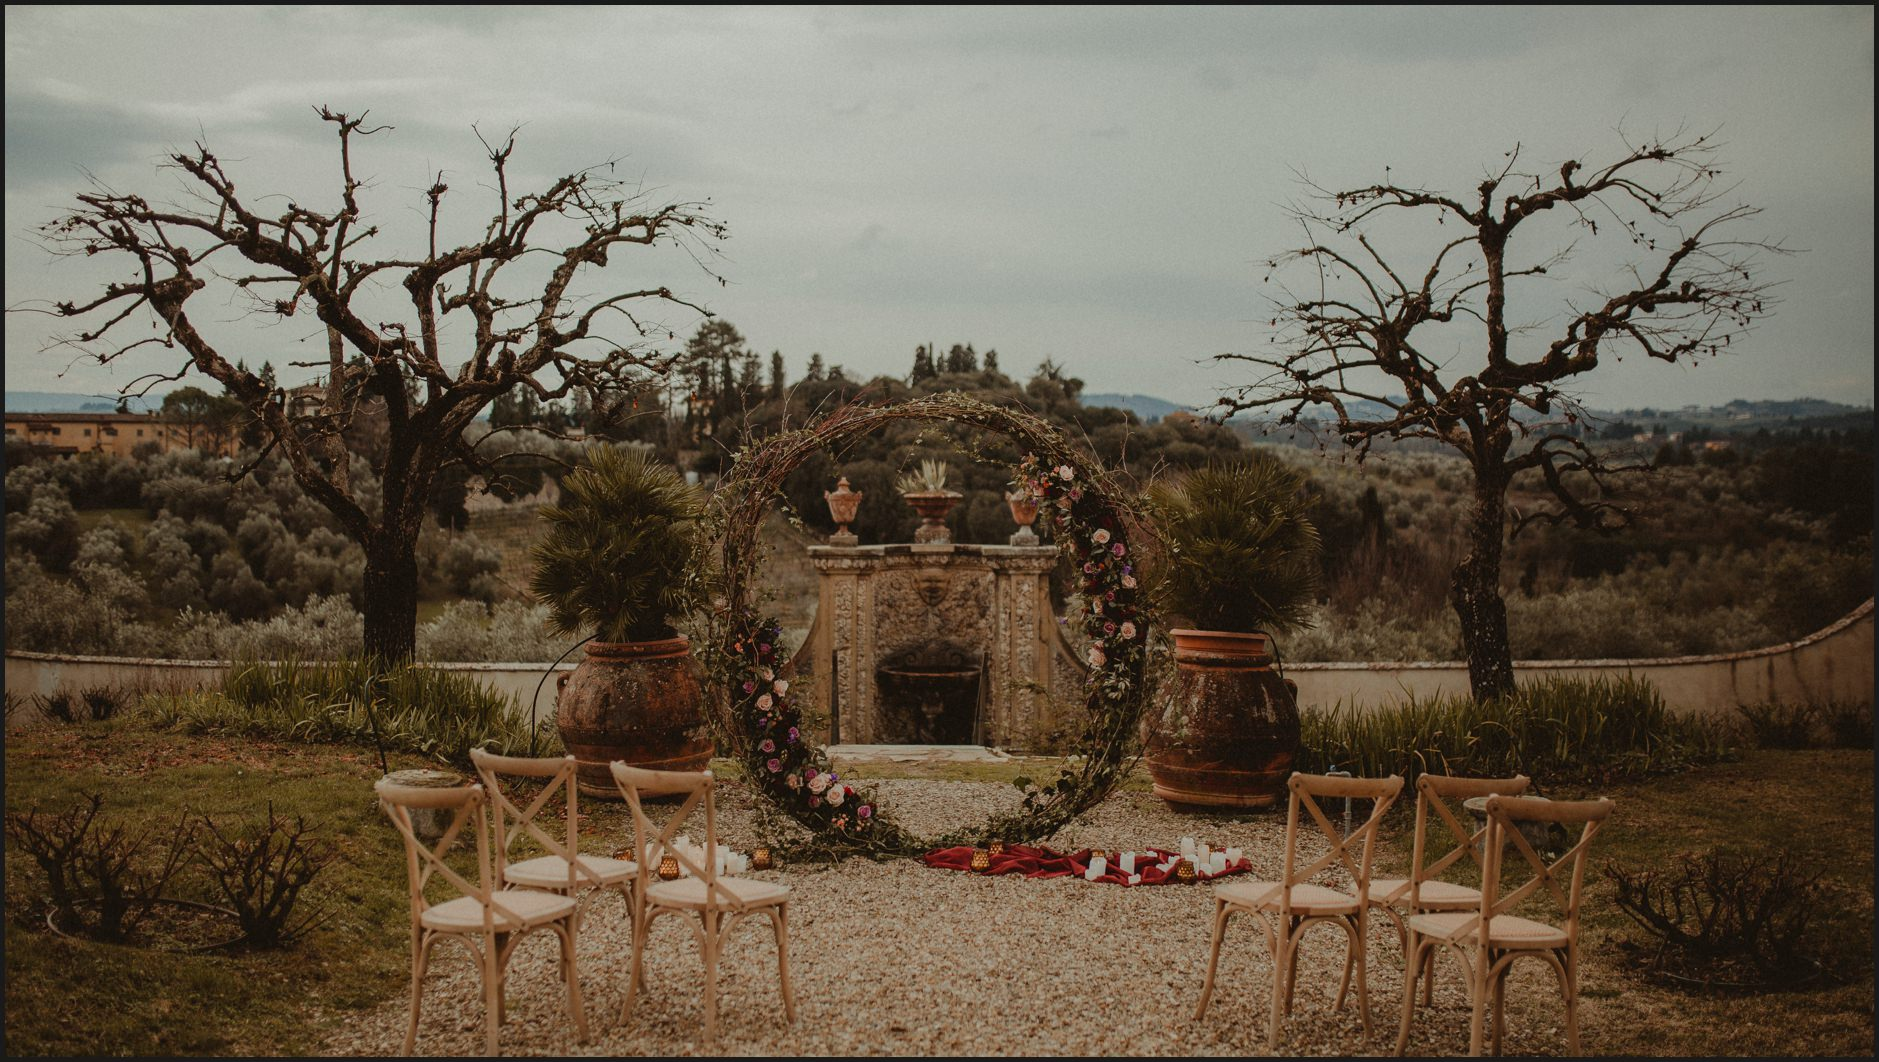 ceremony, villa medicea di lilliano, wedding, details, flowers, arch